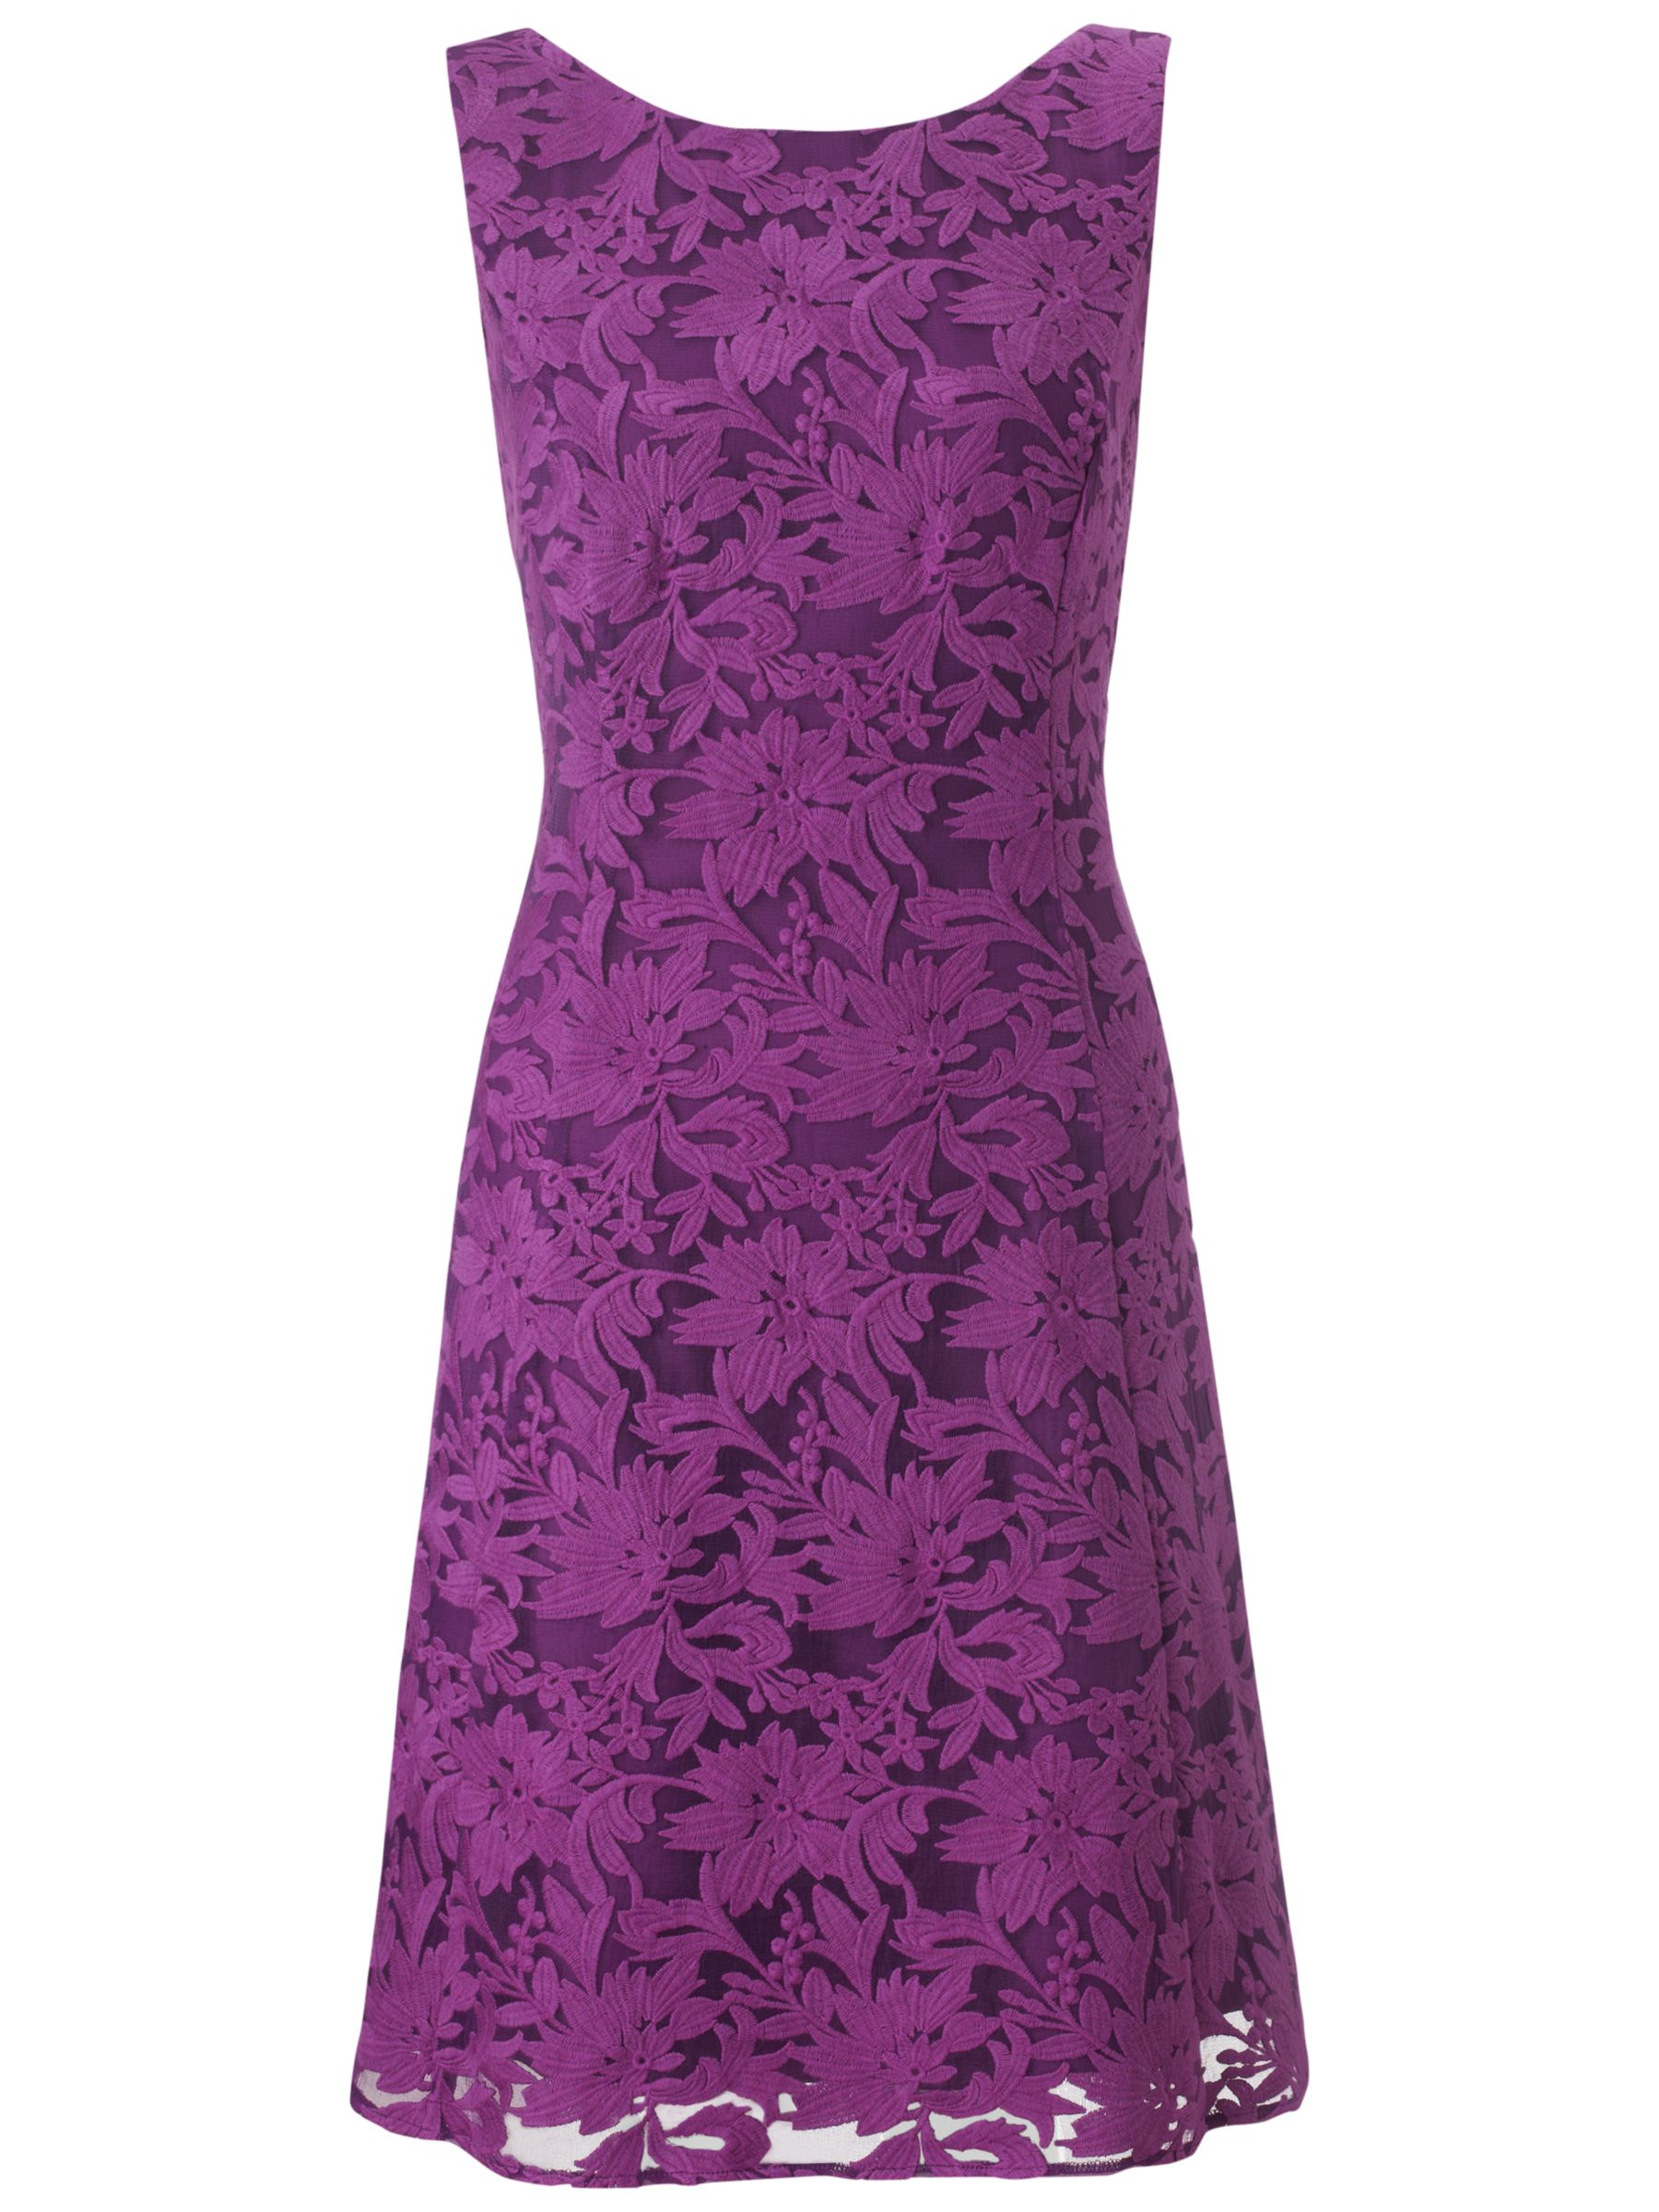 ariella tilly lace short dress purple, ariella, tilly, lace, short, dress, purple, 8|16|14|10|12, clearance, womenswear offers, womens dresses offers, women, inactive womenswear, new reductions, womens dresses, special offers, 1695917